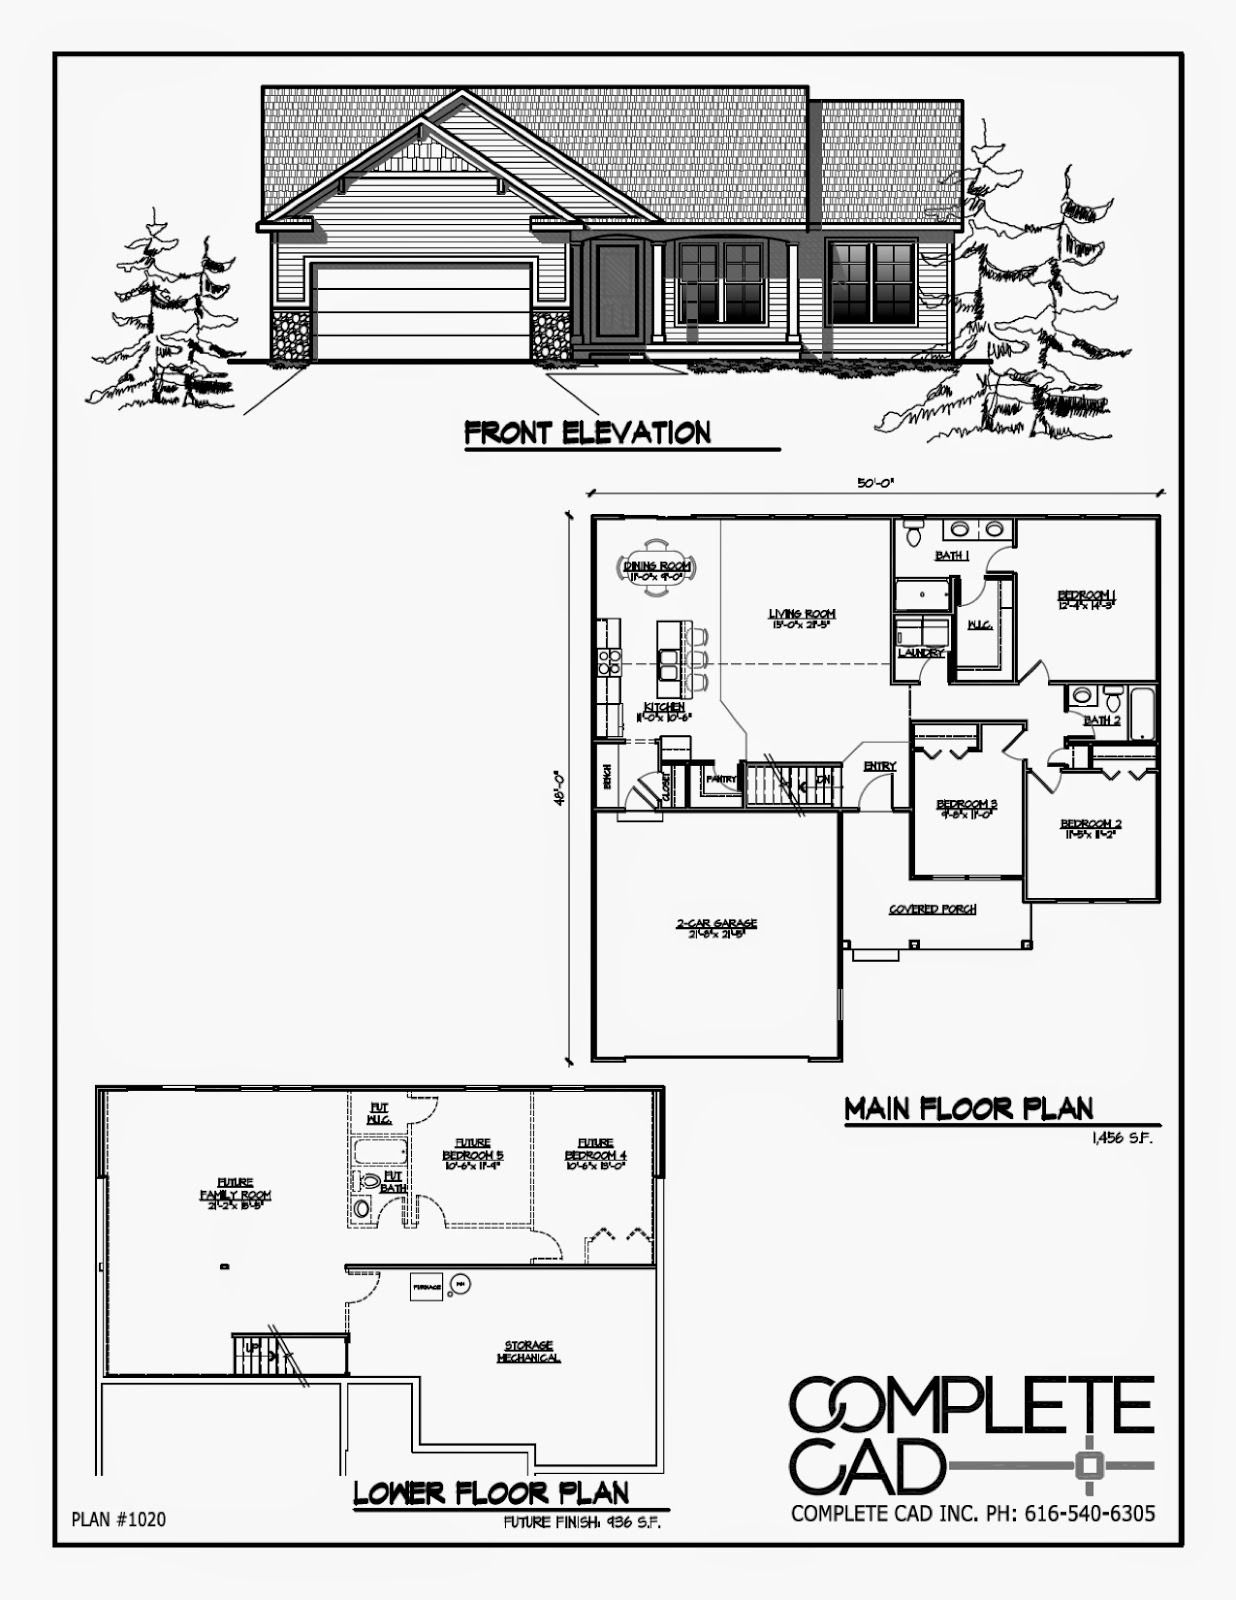 Wheelchair Accessible Style House Plans 2020 In 2020 Accessible House Plans Master Bedroom Floor Plan Ideas Accessible House